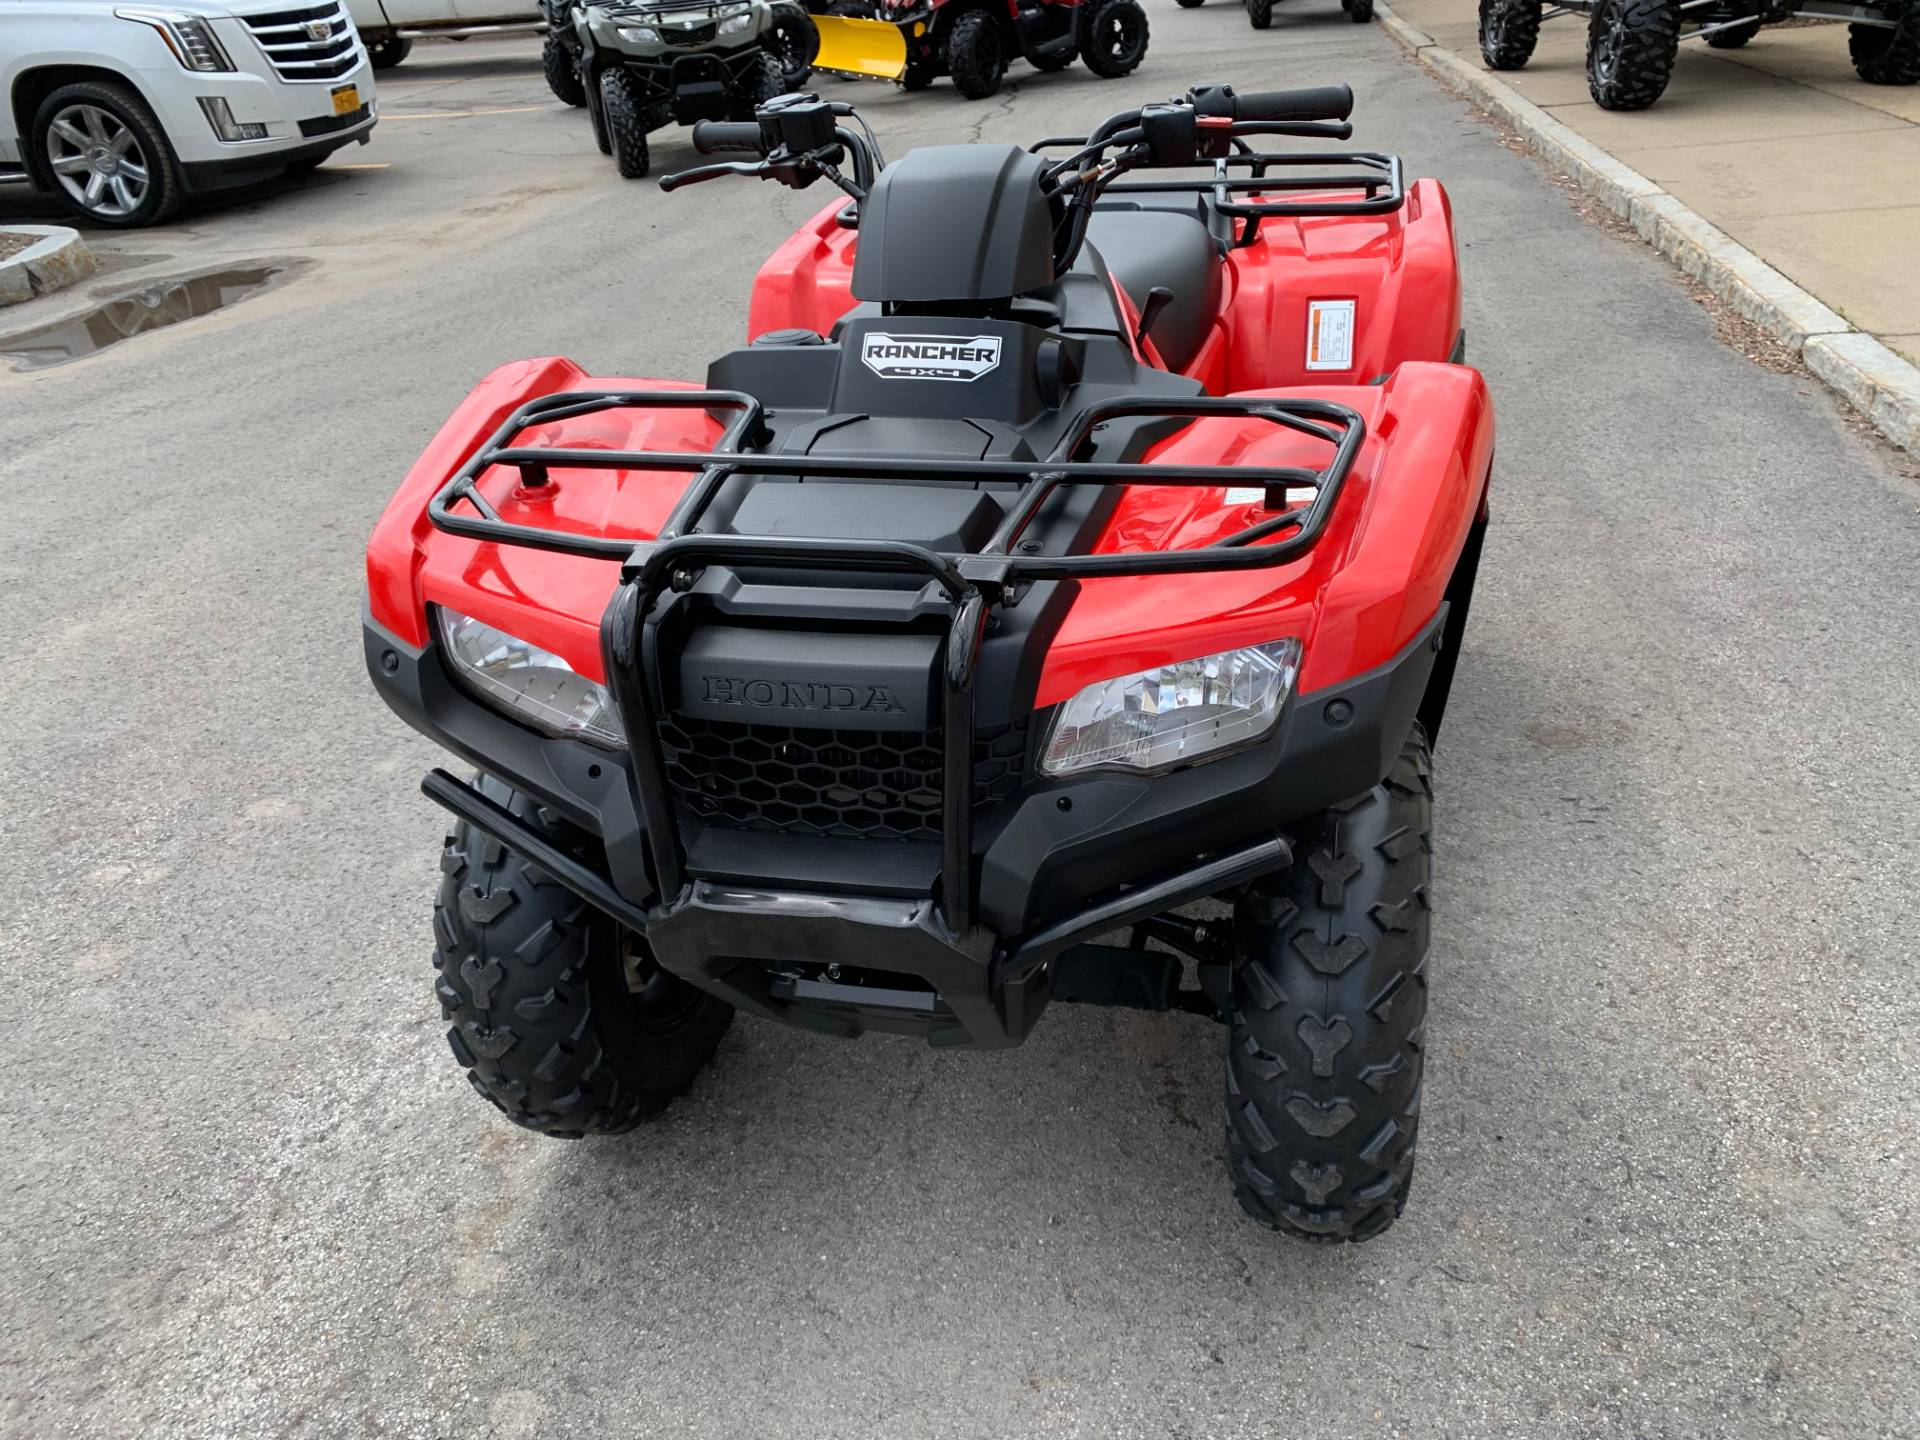 2018 Honda FourTrax Rancher 4x4 in Herkimer, New York - Photo 12